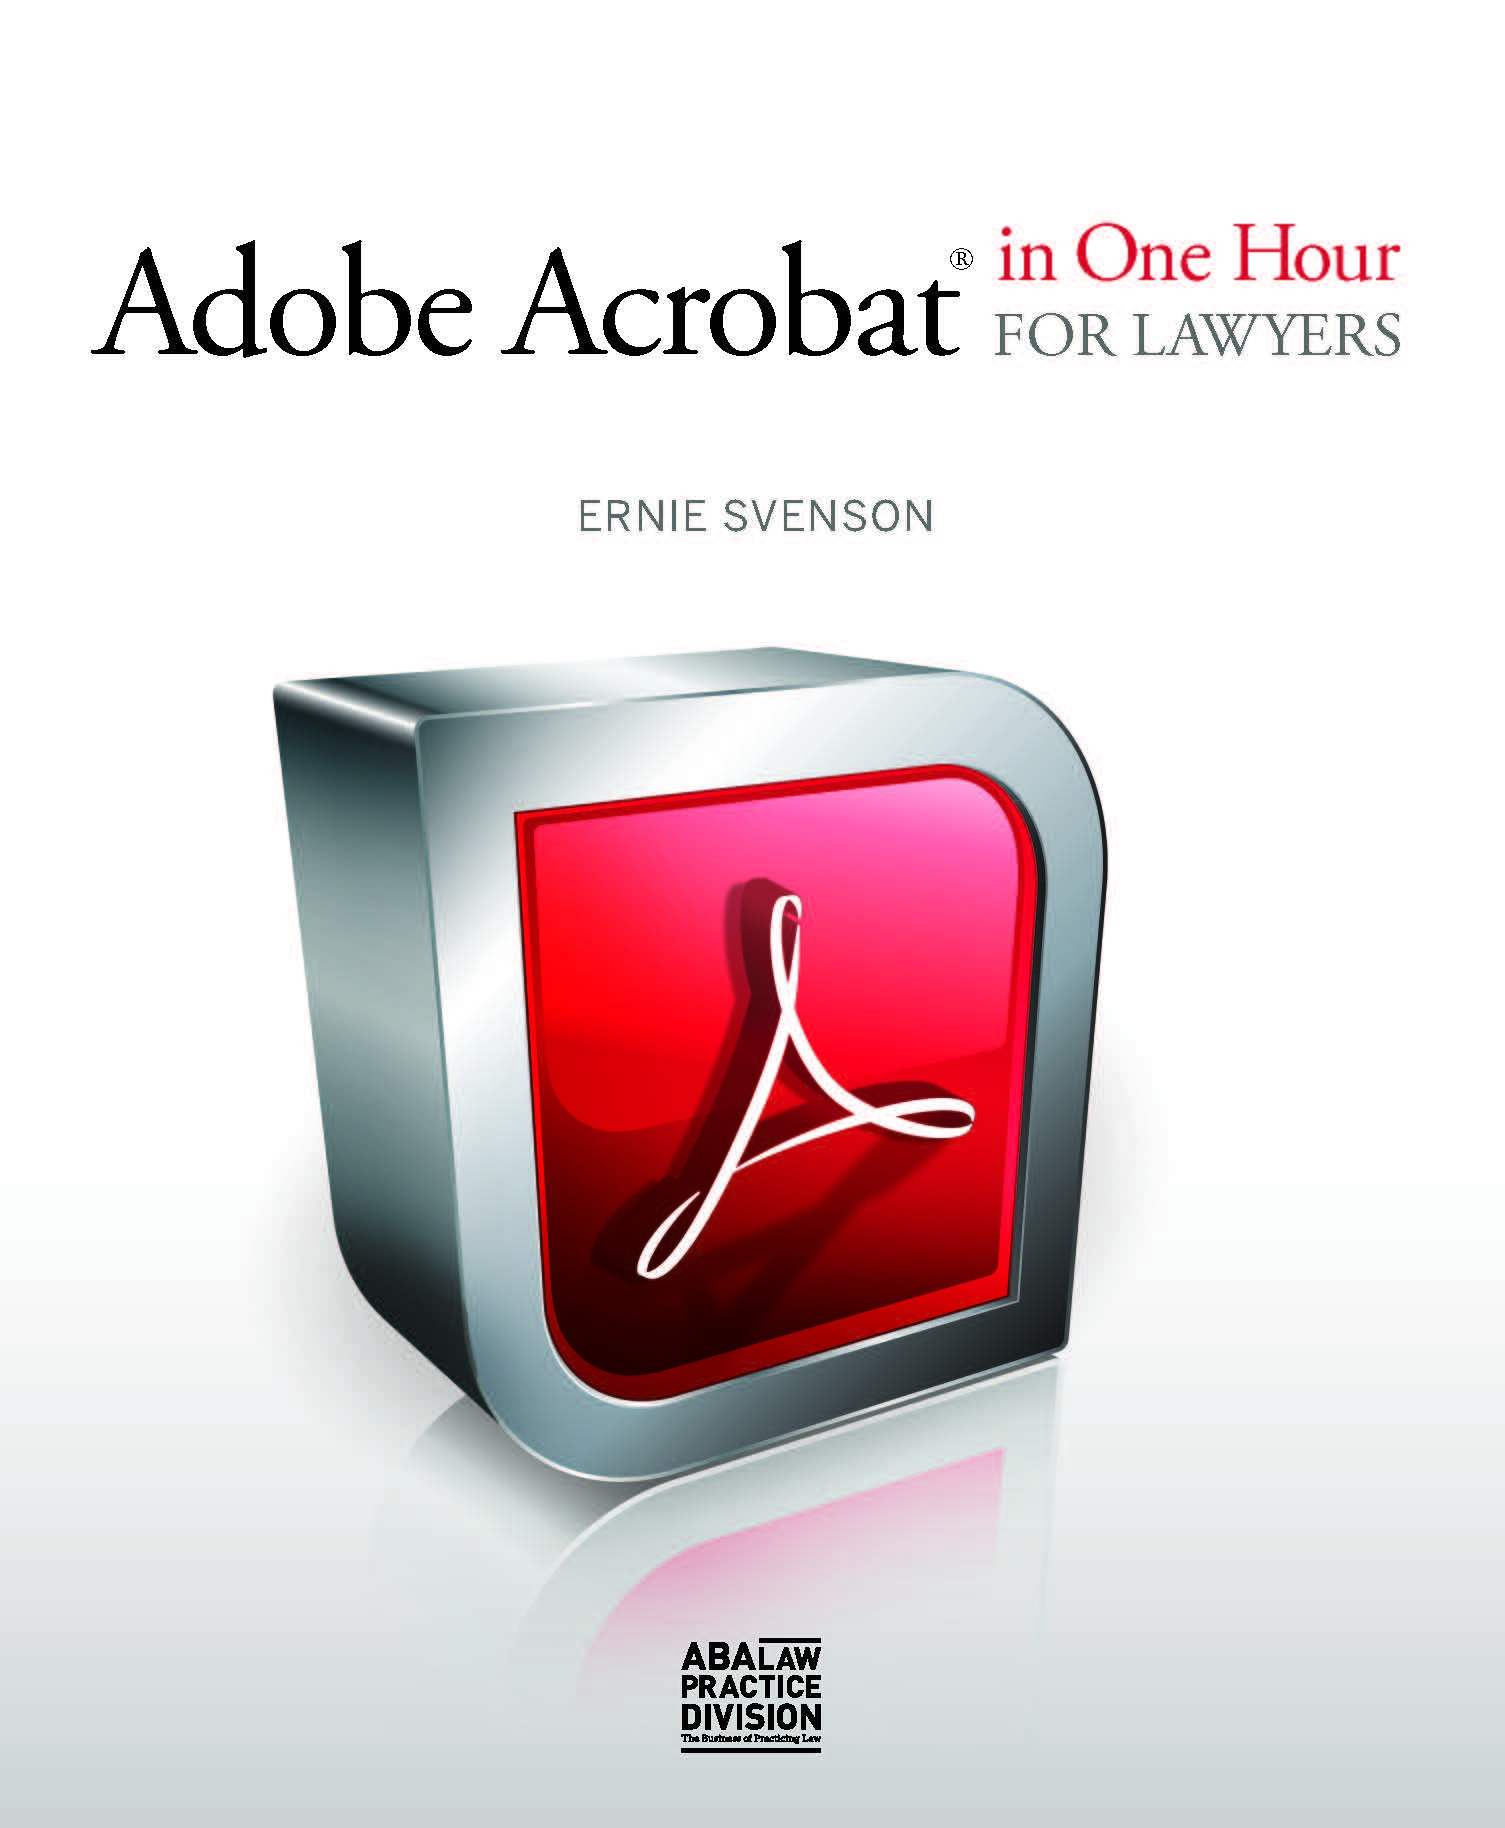 Adobe Acrobat in One Hour for Lawyers